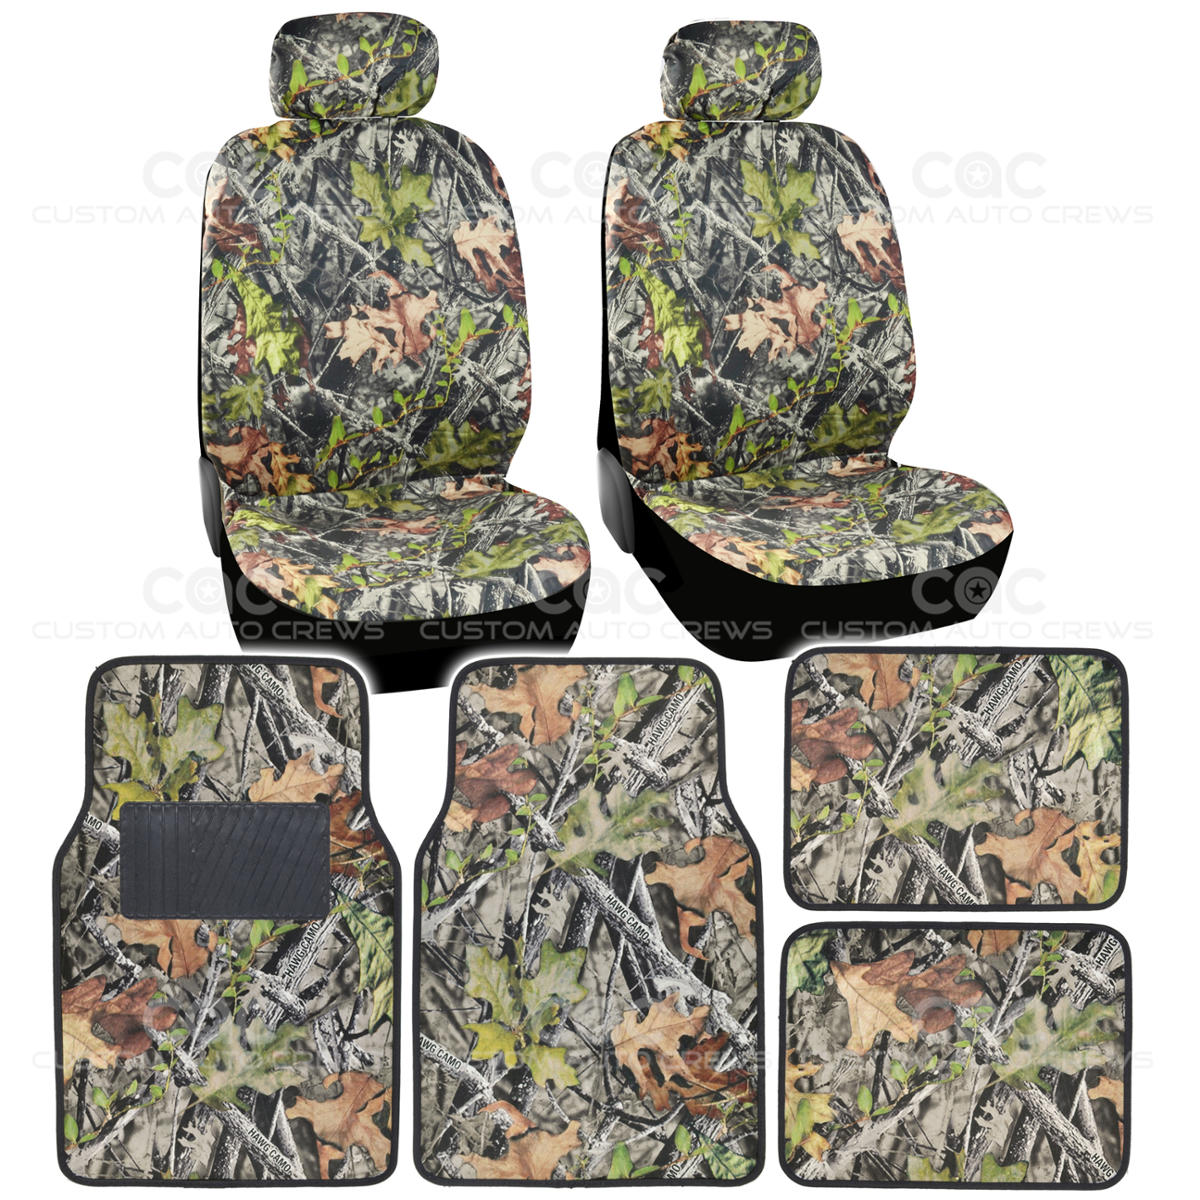 4pc Camo Car Seat Cover Amp 4pc Camo Microfiber Floor Mats